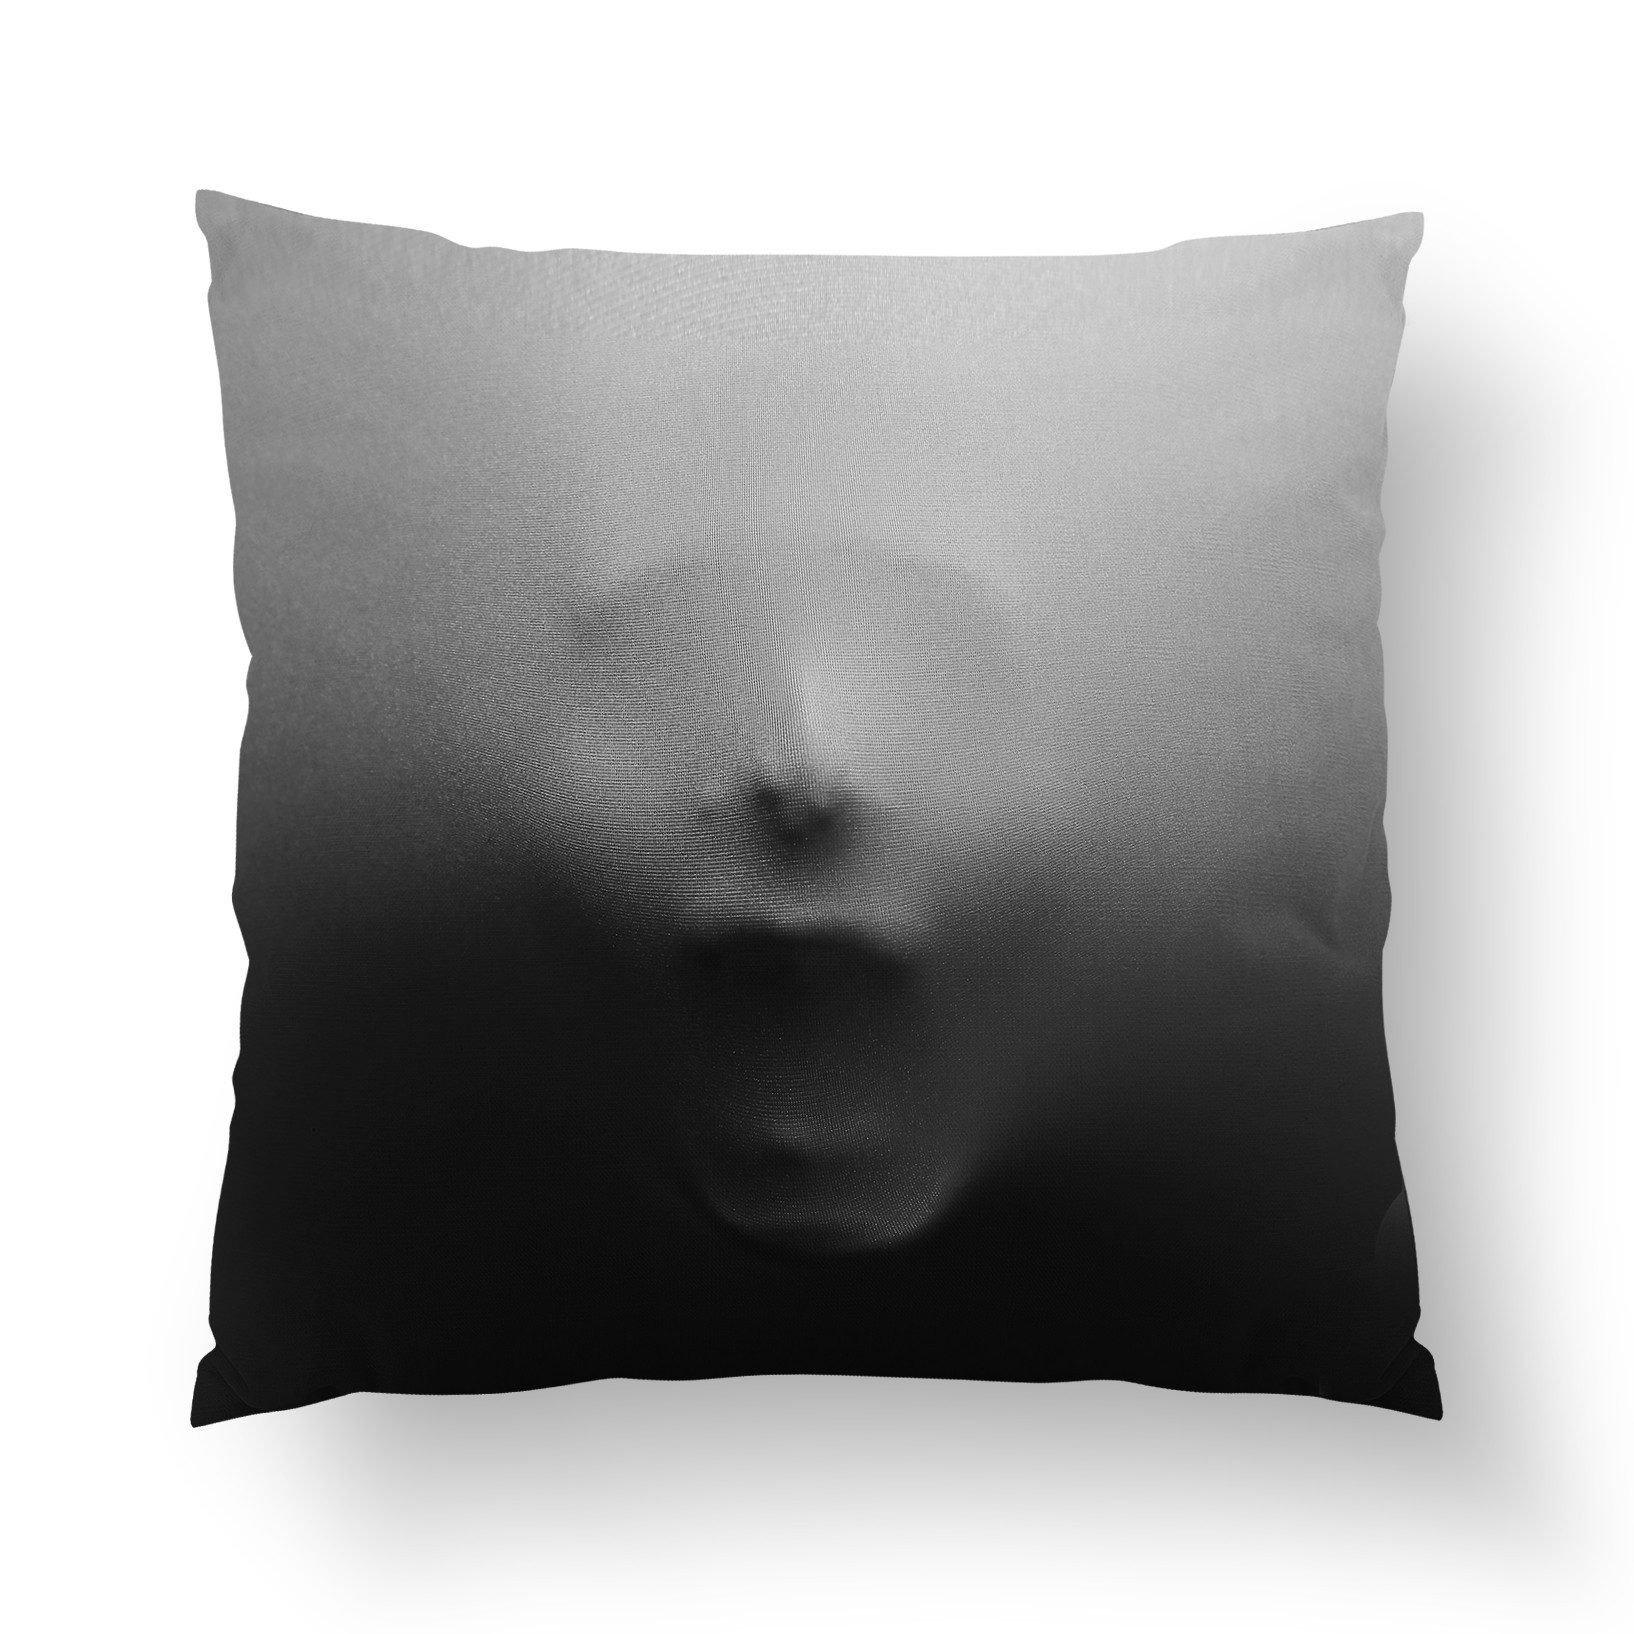 Halloween Pillow Cover - Pillow Covers - W.FRANCIS